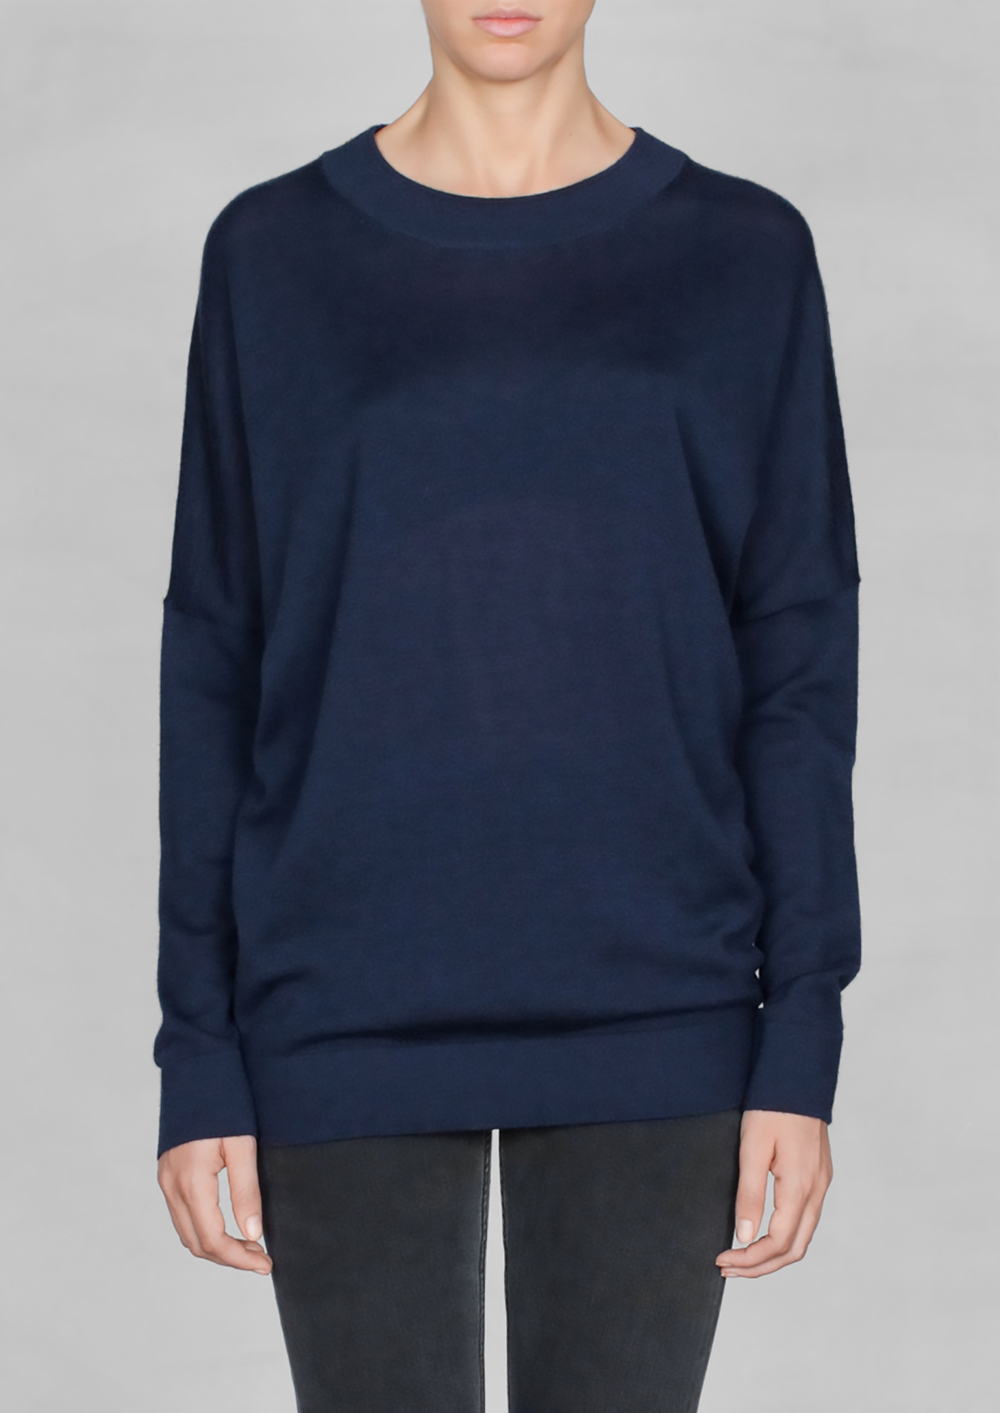 &otherstories merino wool sweater 1500.jpg